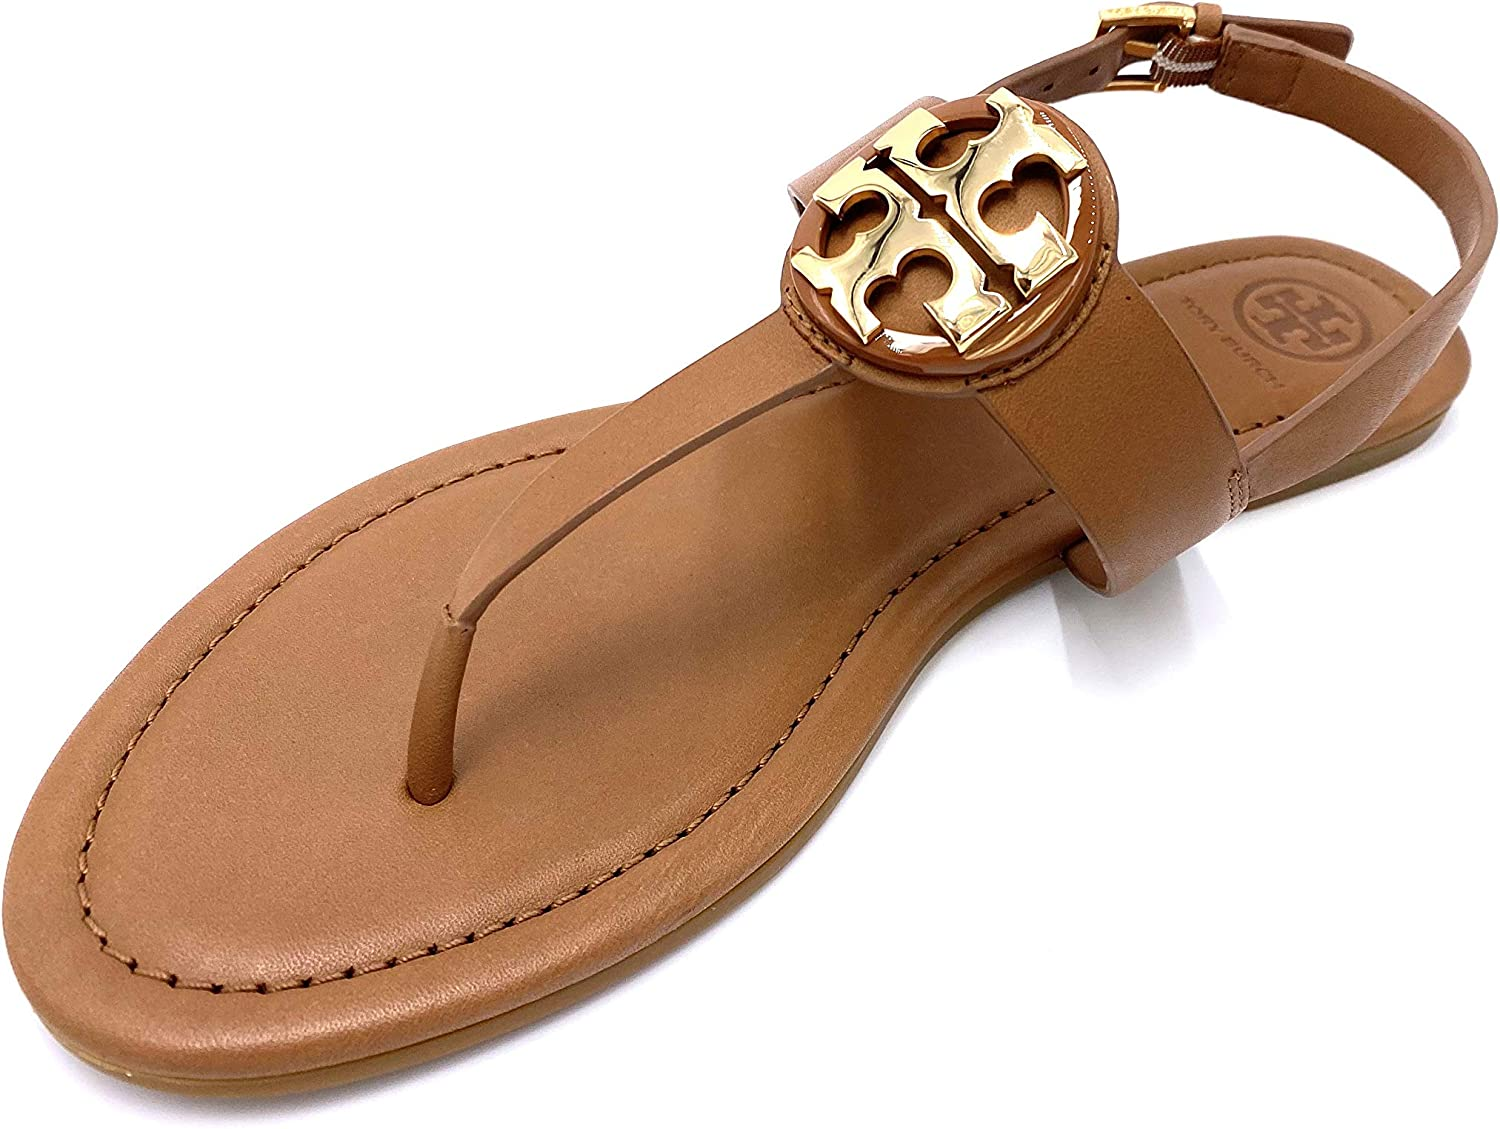 Tory Burch 61768 Claire Flat Thong